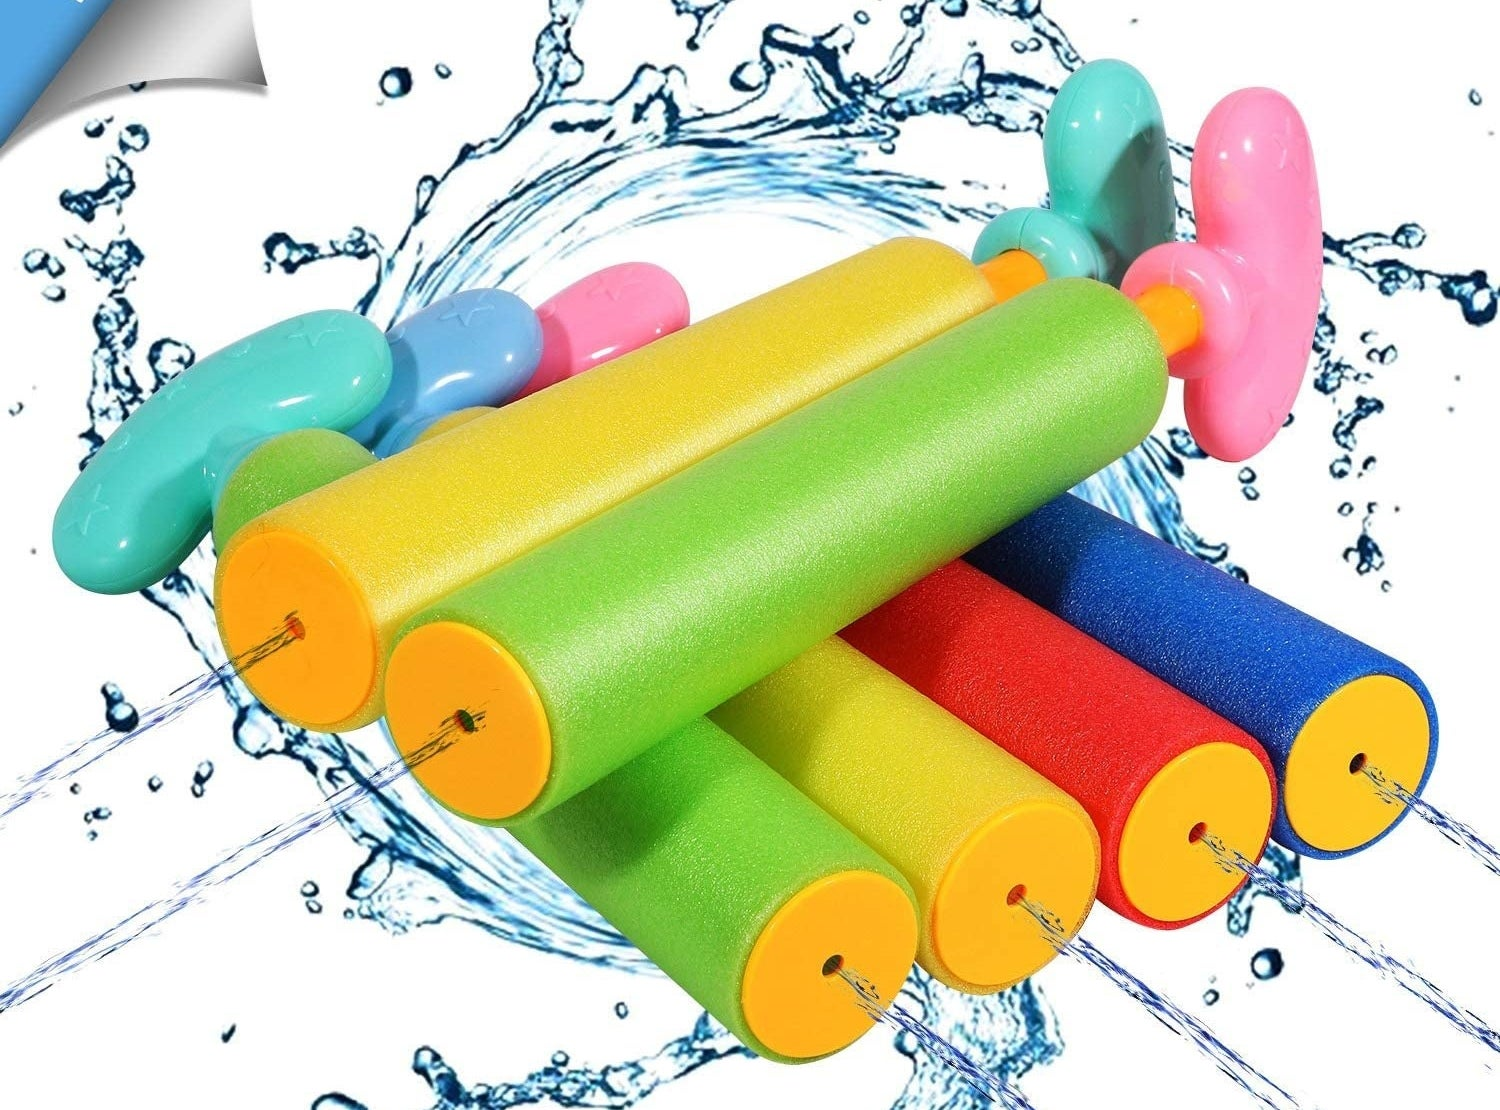 Six foam water blasters that are straight, cylindrical tubes with pumps to suck in and blast water